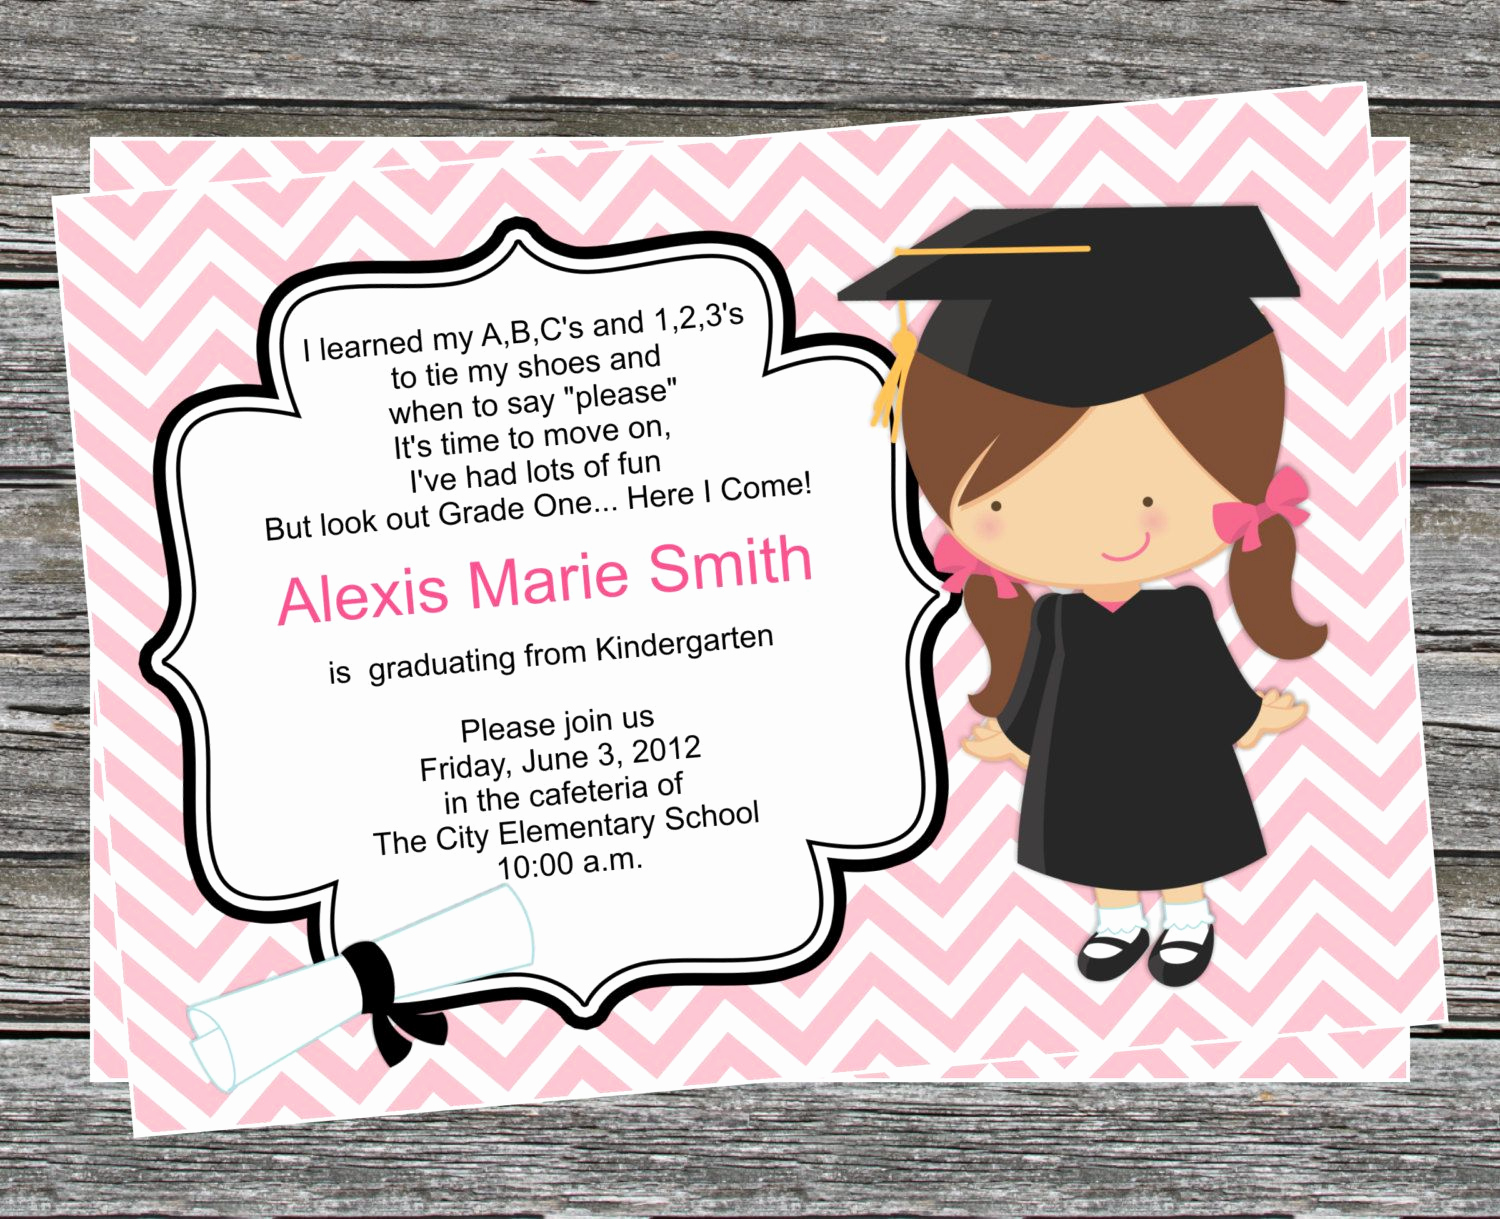 Kindergarten Graduation Invitation Ideas Lovely Pre K or Kindergarten Graduation Invitation Boy and Girl